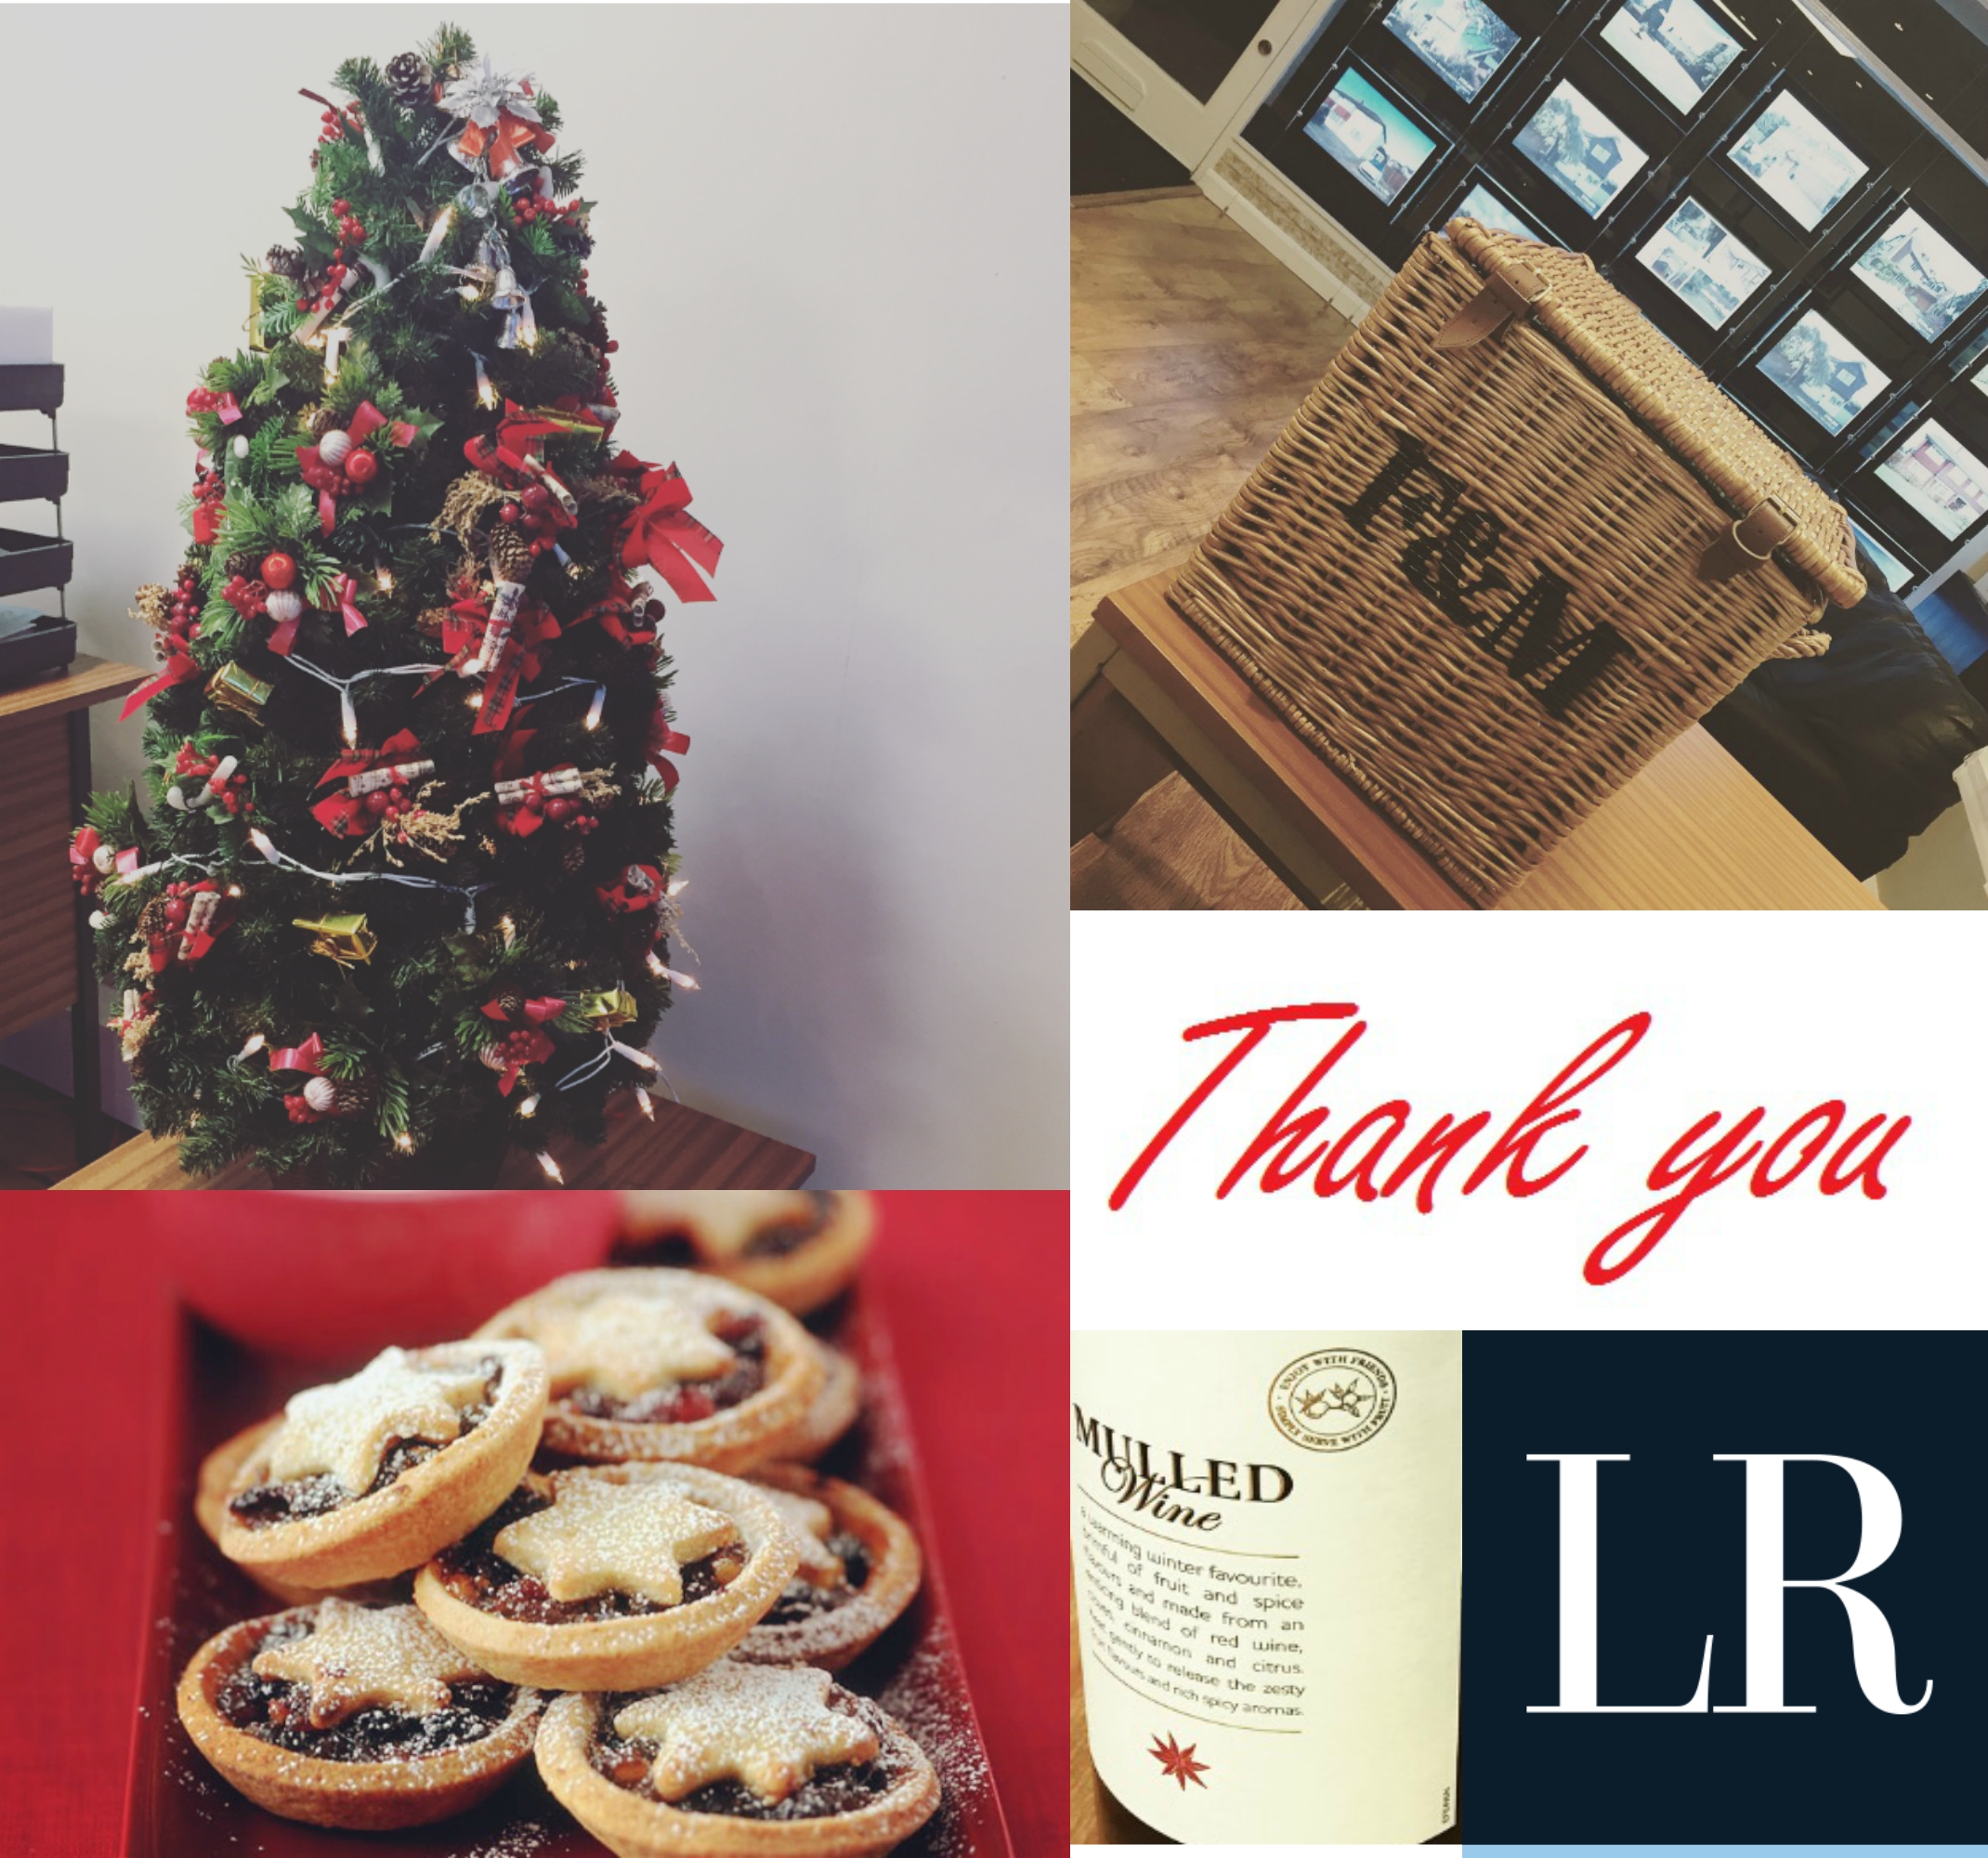 Thank you to everyone who came to our mince pie and mulled wine evening